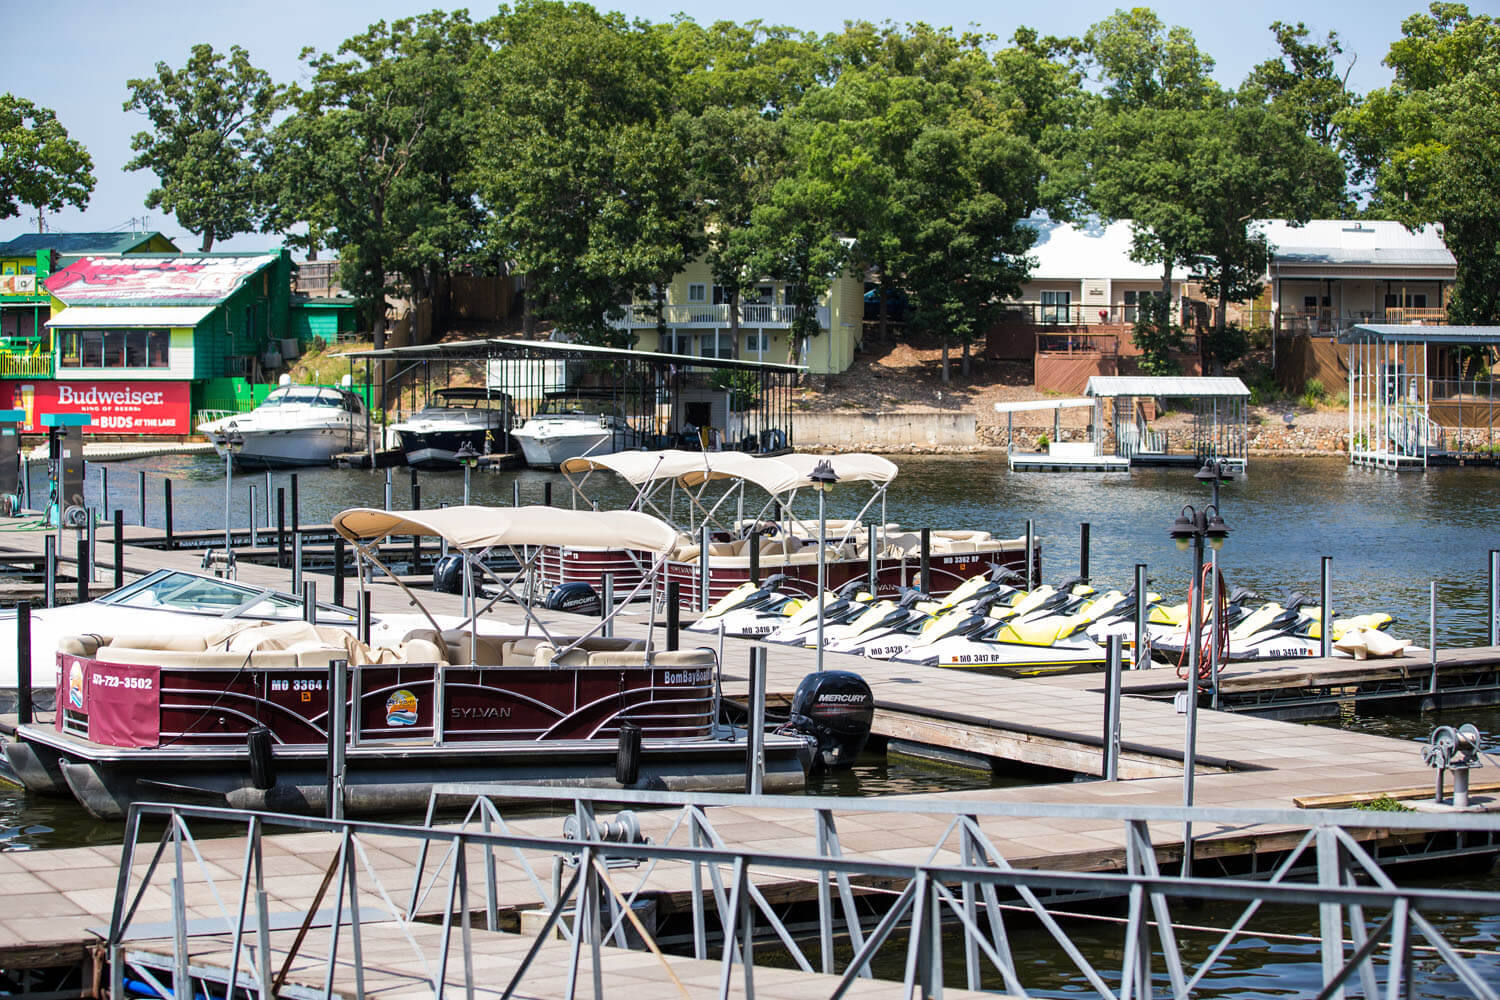 Boats and jet skis are docked in front of Camden on the Lake Resort